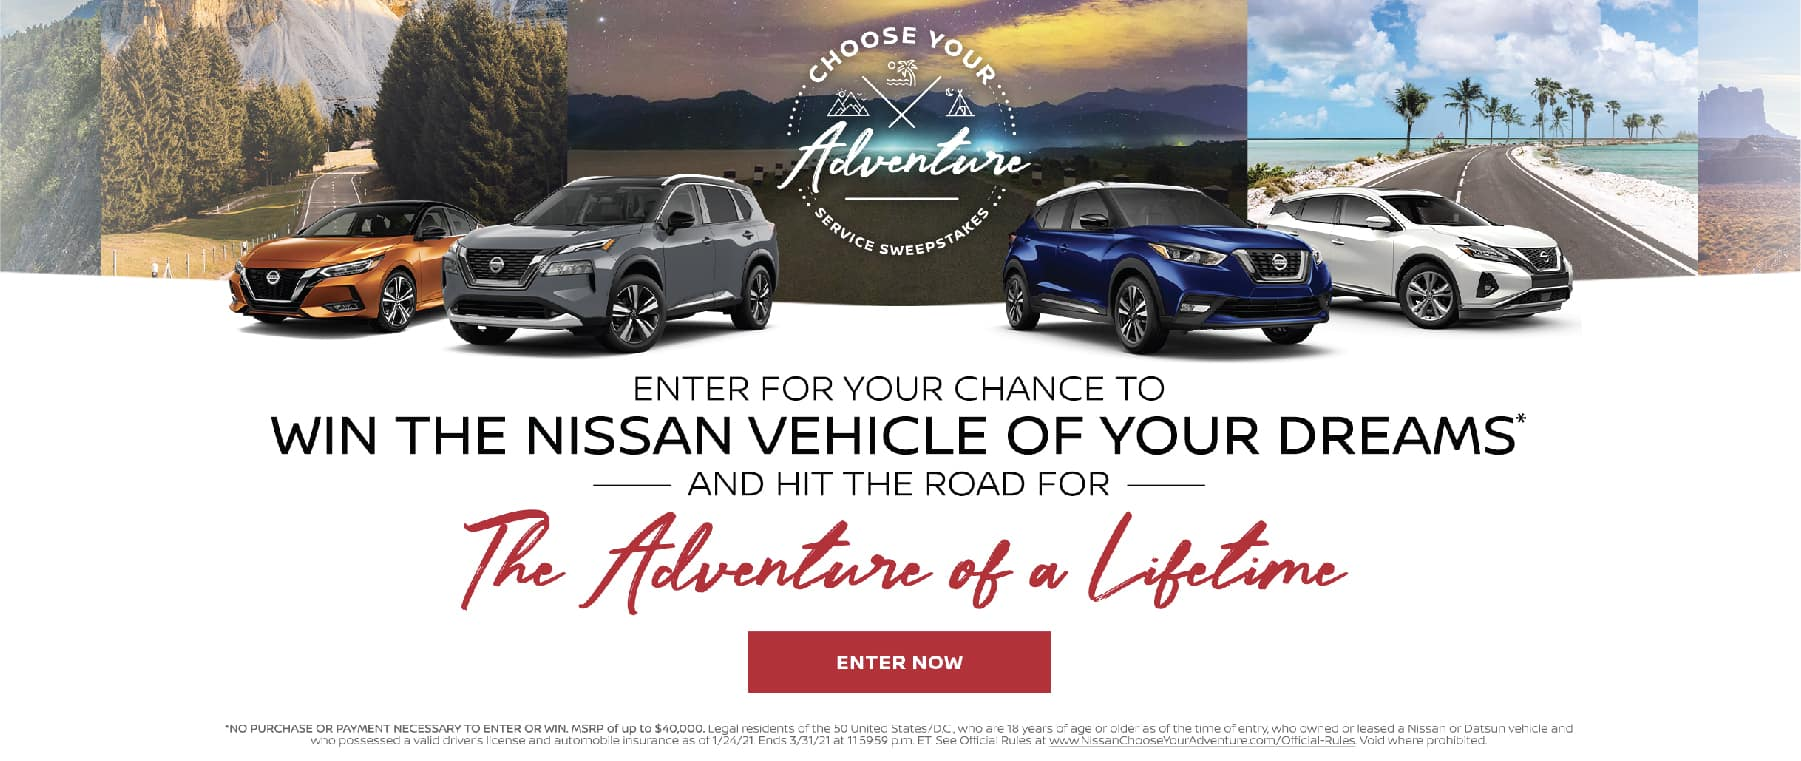 Win the Nissan Vehicle of your Dreams